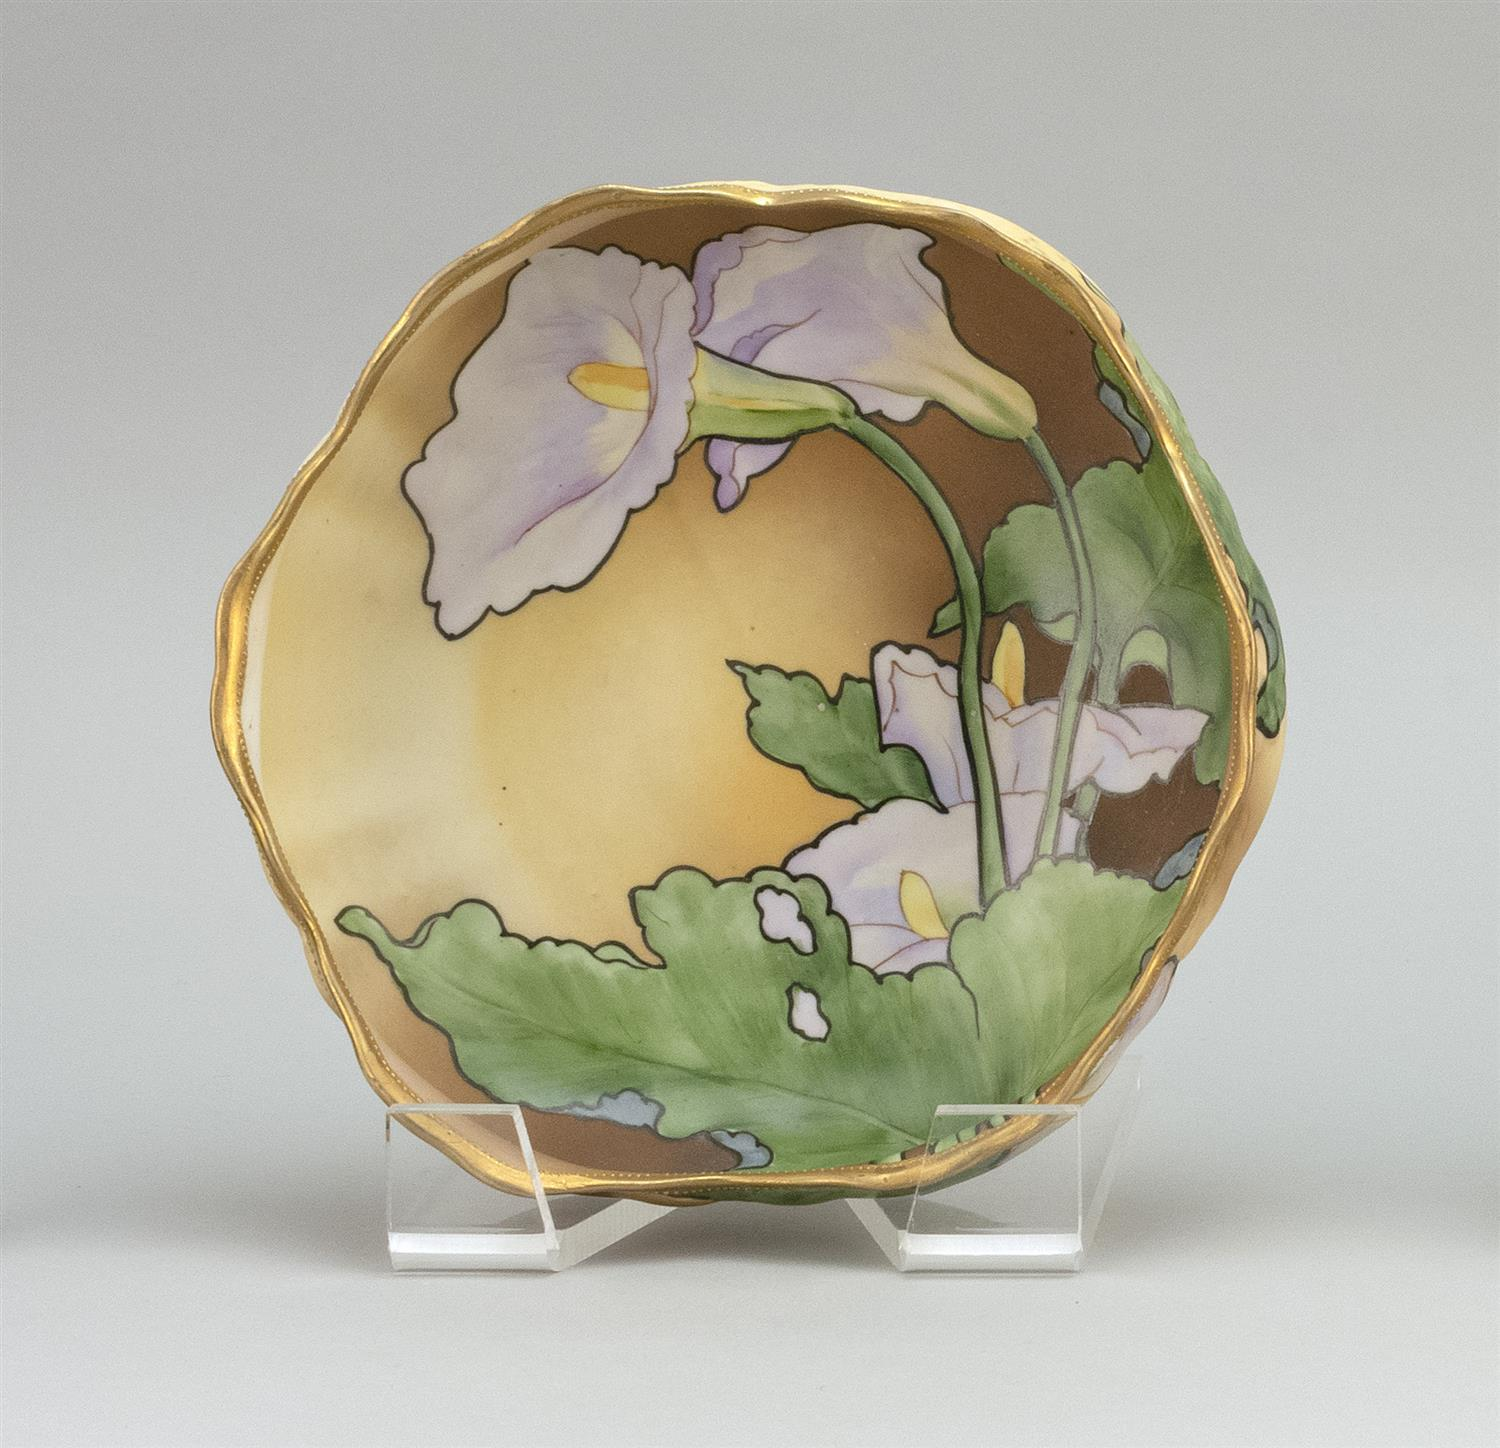 "NIPPON PORCELAIN BOWL Floriform, with raised foot and calla lily decoration. Van Patten #42 mark on base. Diameter 8.5""."